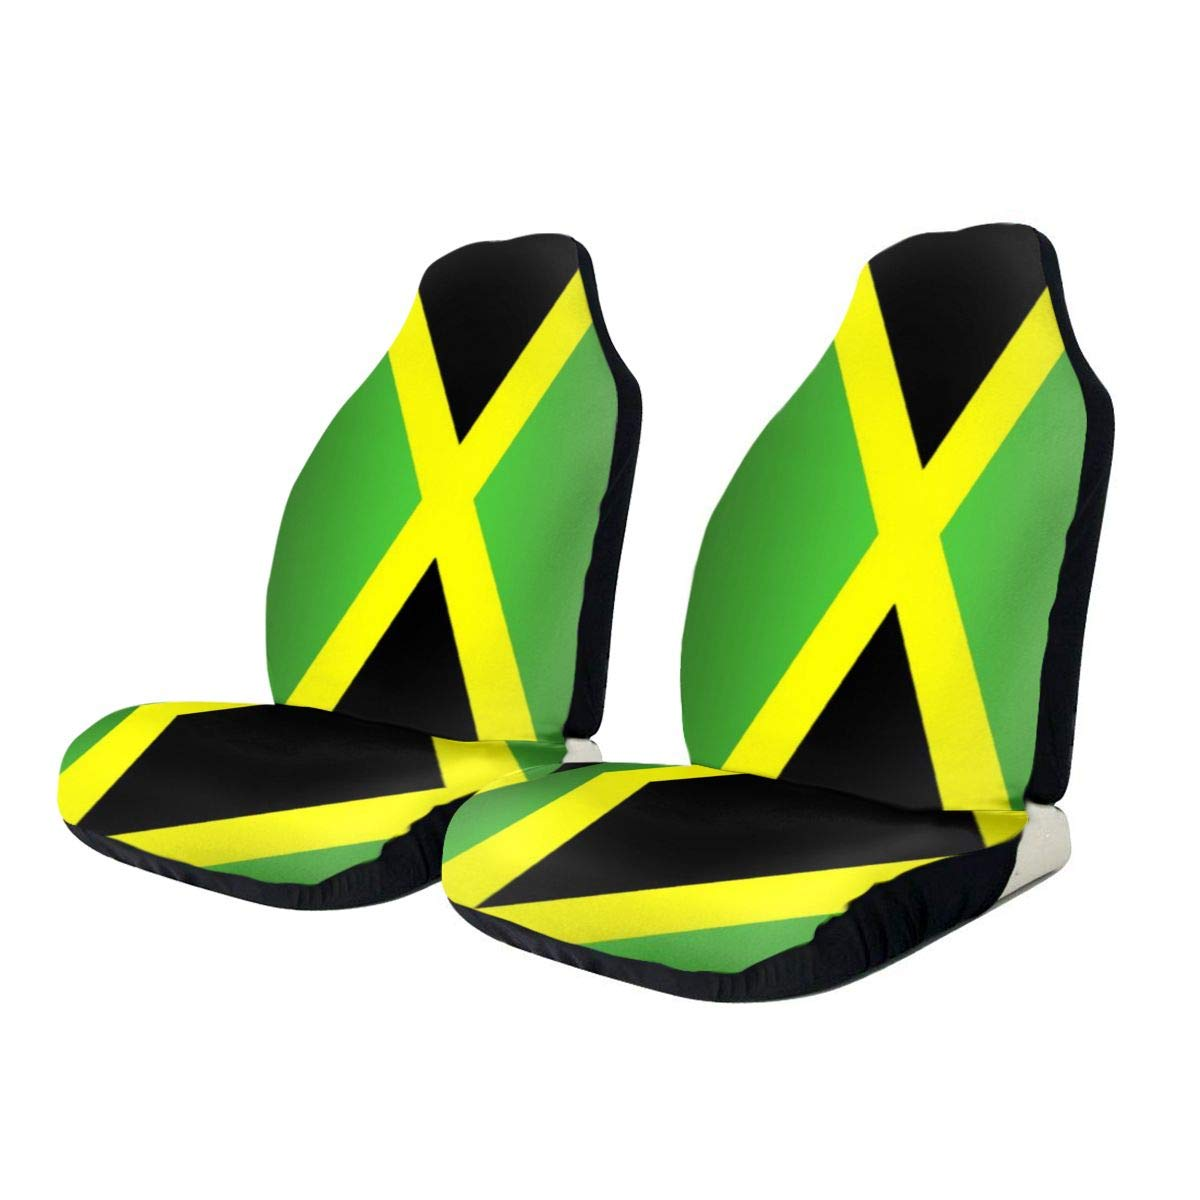 CHILL·TEK Car Seat Covers, Jamaican Flag Auto Seat Covers Set of 2 - Vehicle Seat Protector Car Mat Covers - Universal Fit Full Set for Most Vehicle/Cars/Truck/SUV/Van